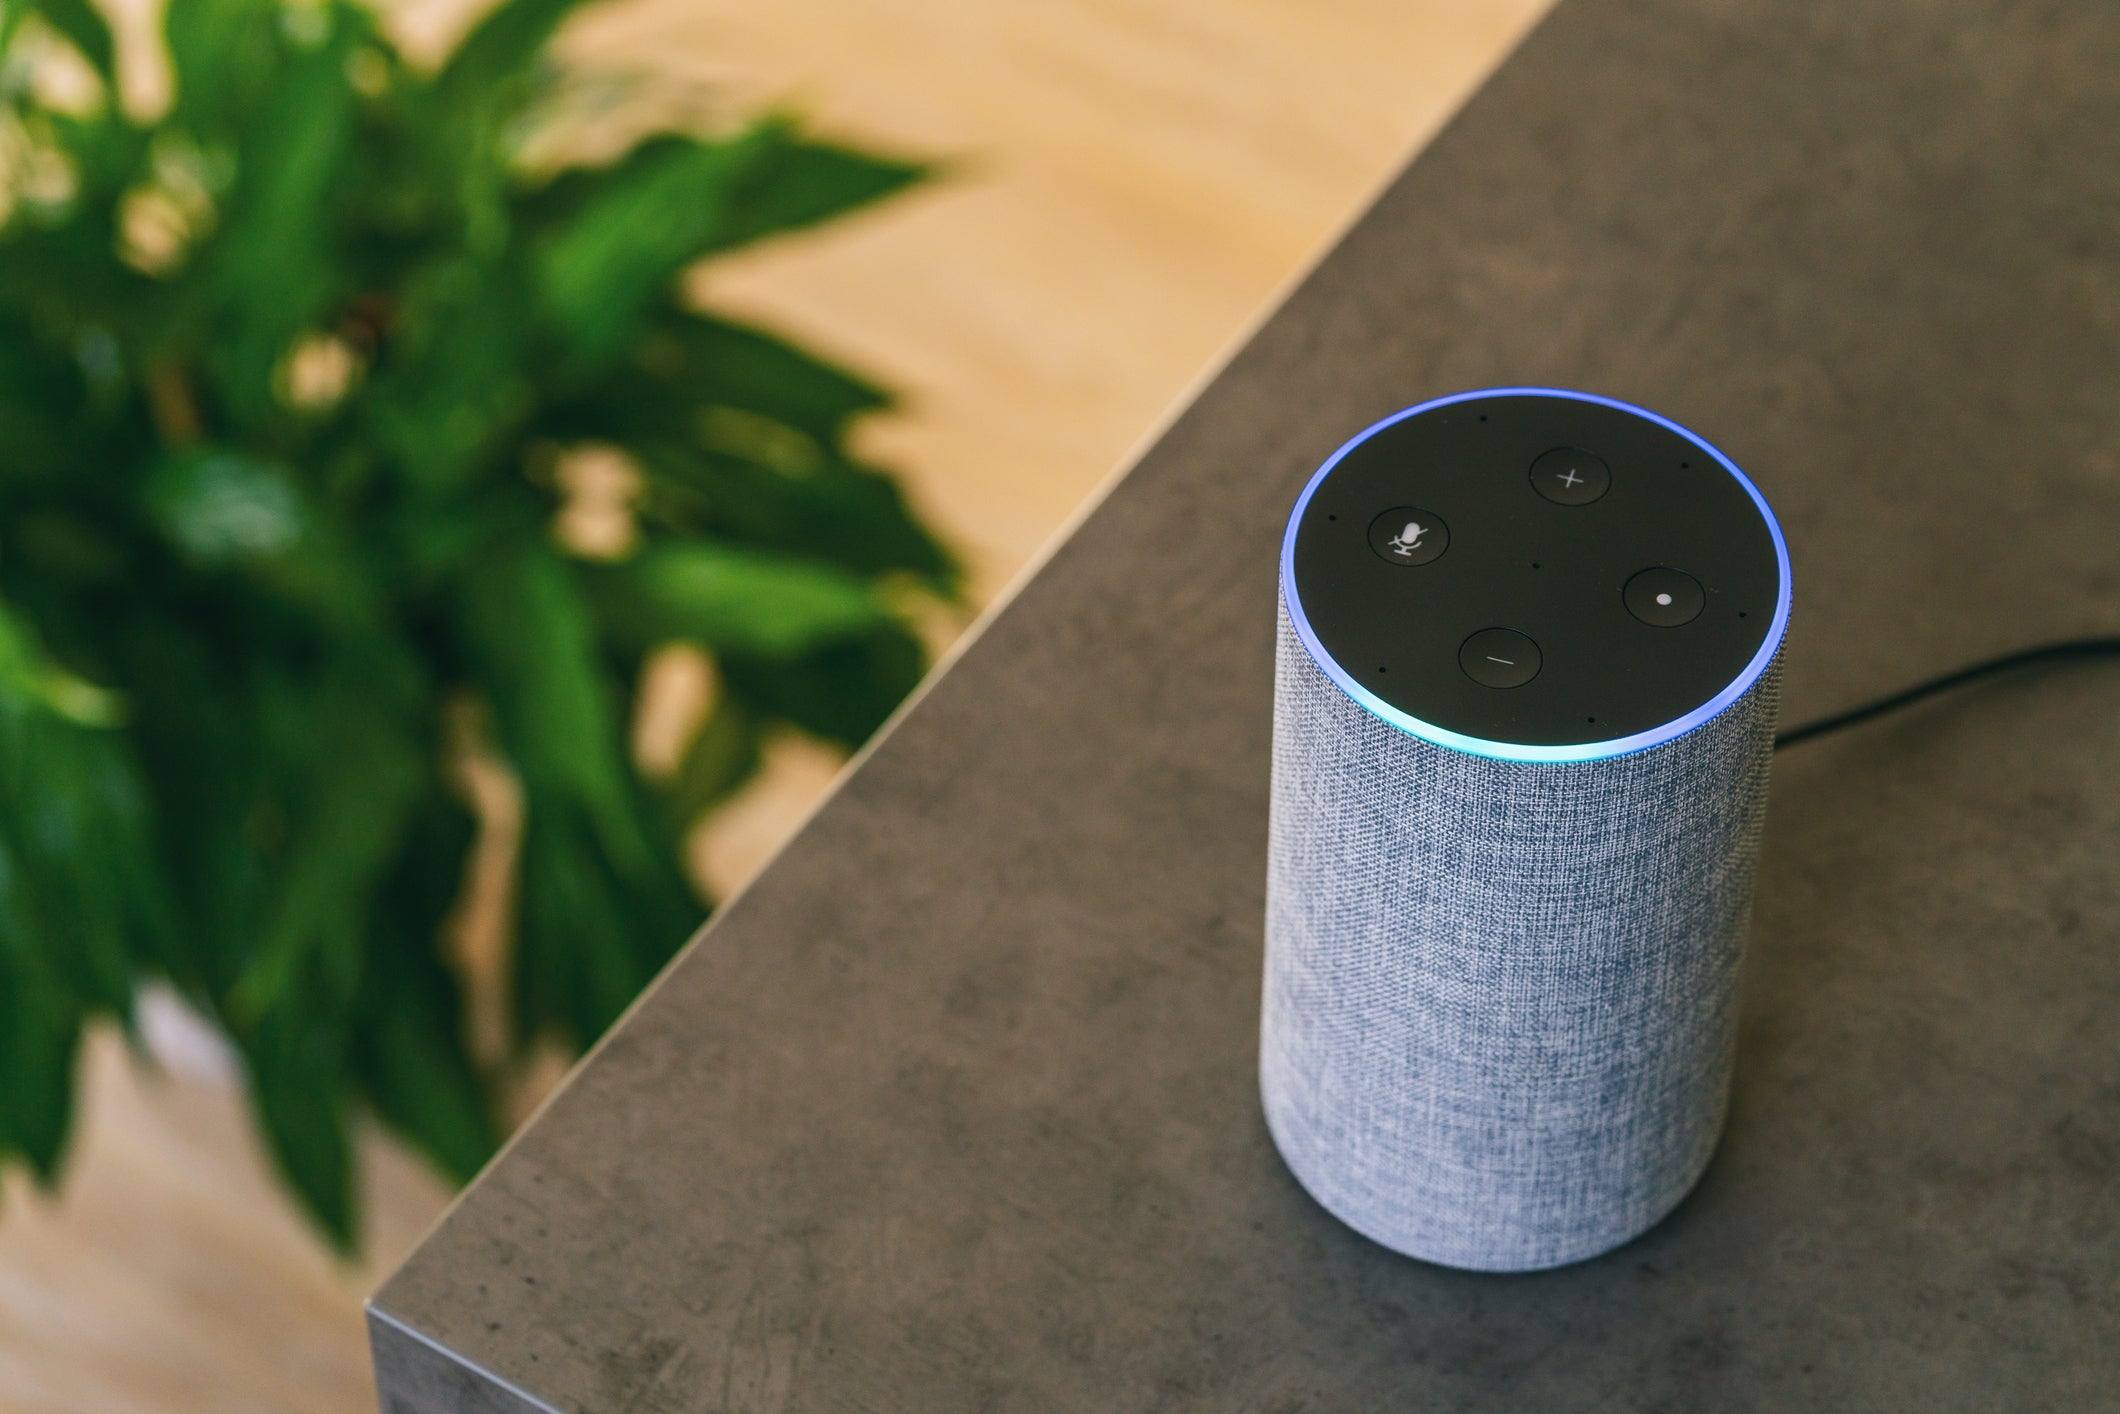 Everything You Need to Know about Alexa's New Security Flaw